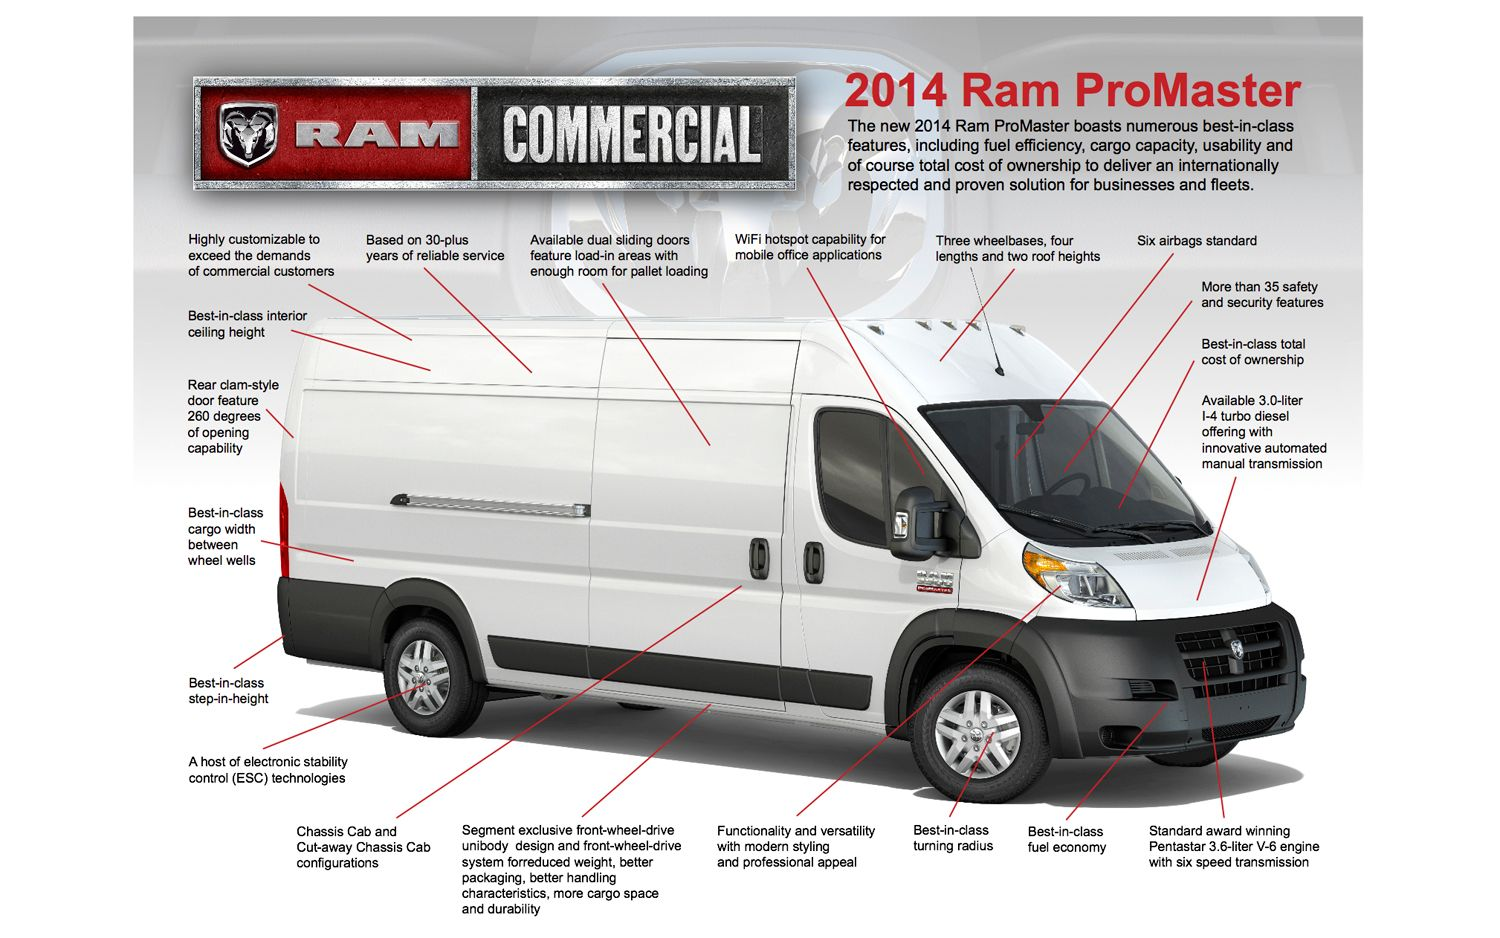 2014 ram promaster first look photo gallery visit http www jimclickdodge